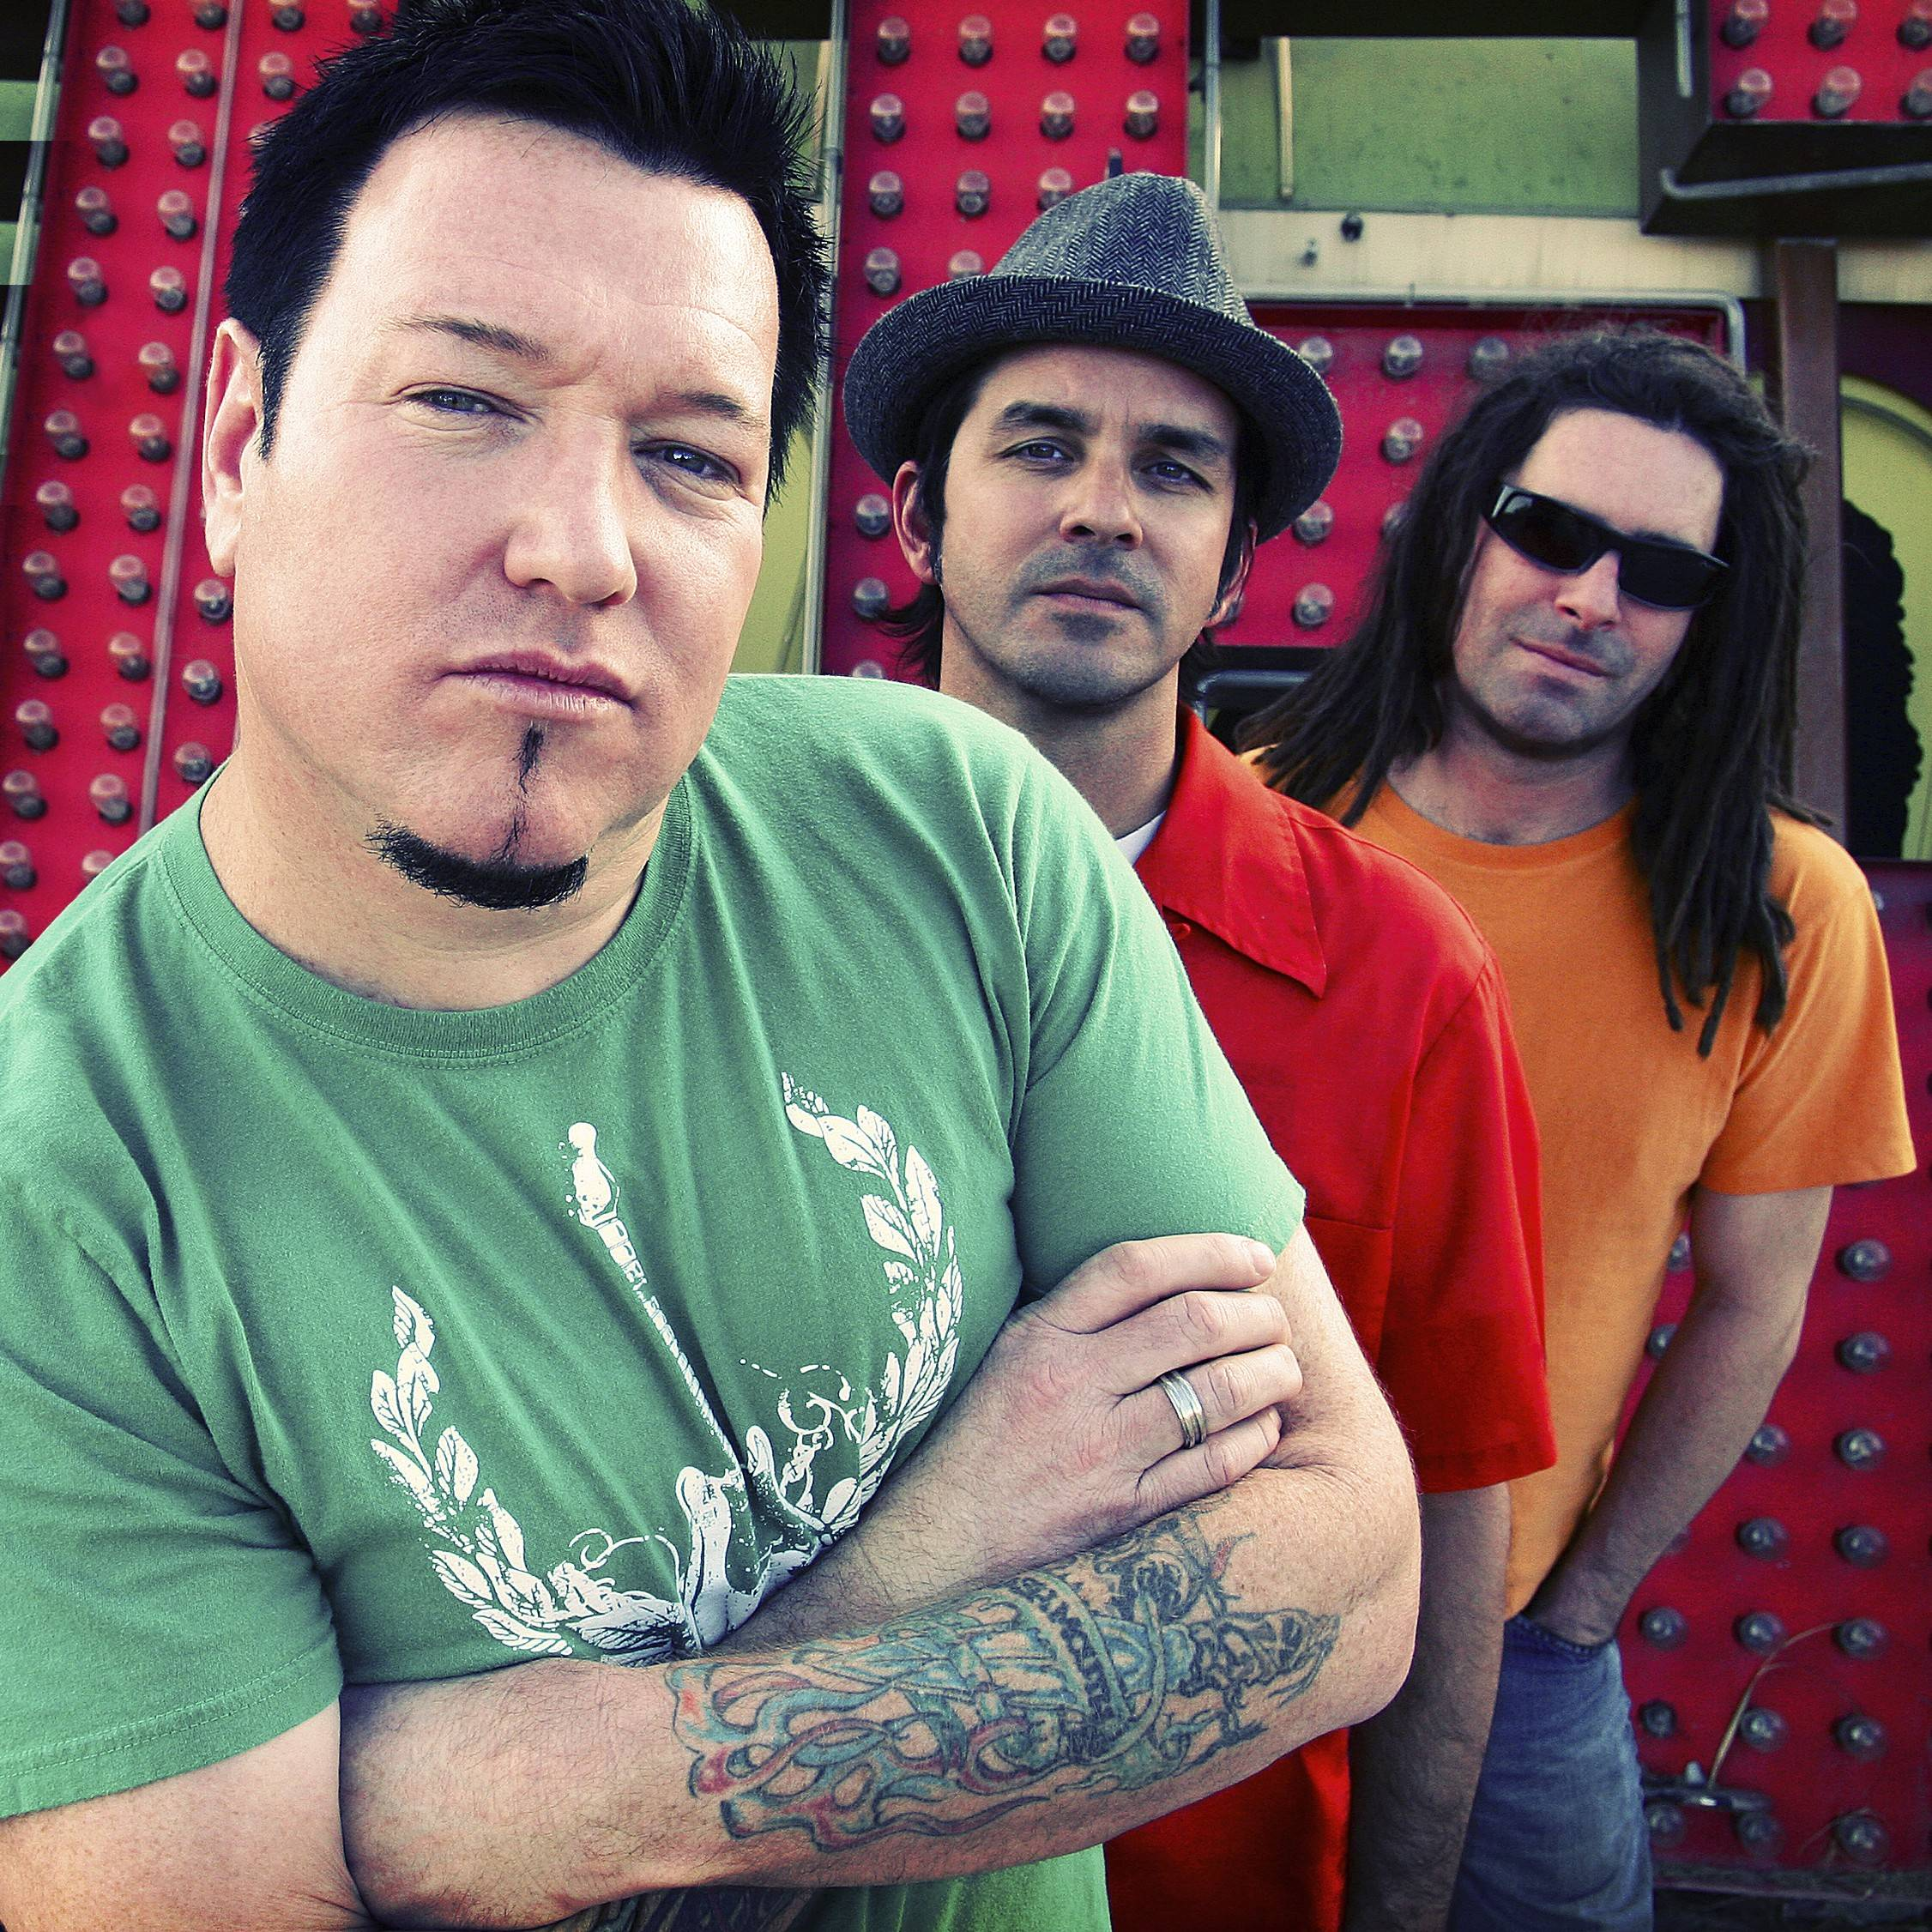 The rock band Smash Mouth, best known for its late '90s hits, will headline Northwest Fourth Fest at the Sears Centre Arena in Hoffman Estates Saturday, July 5. Village officials authorized a $35,000 contract for the band Monday.